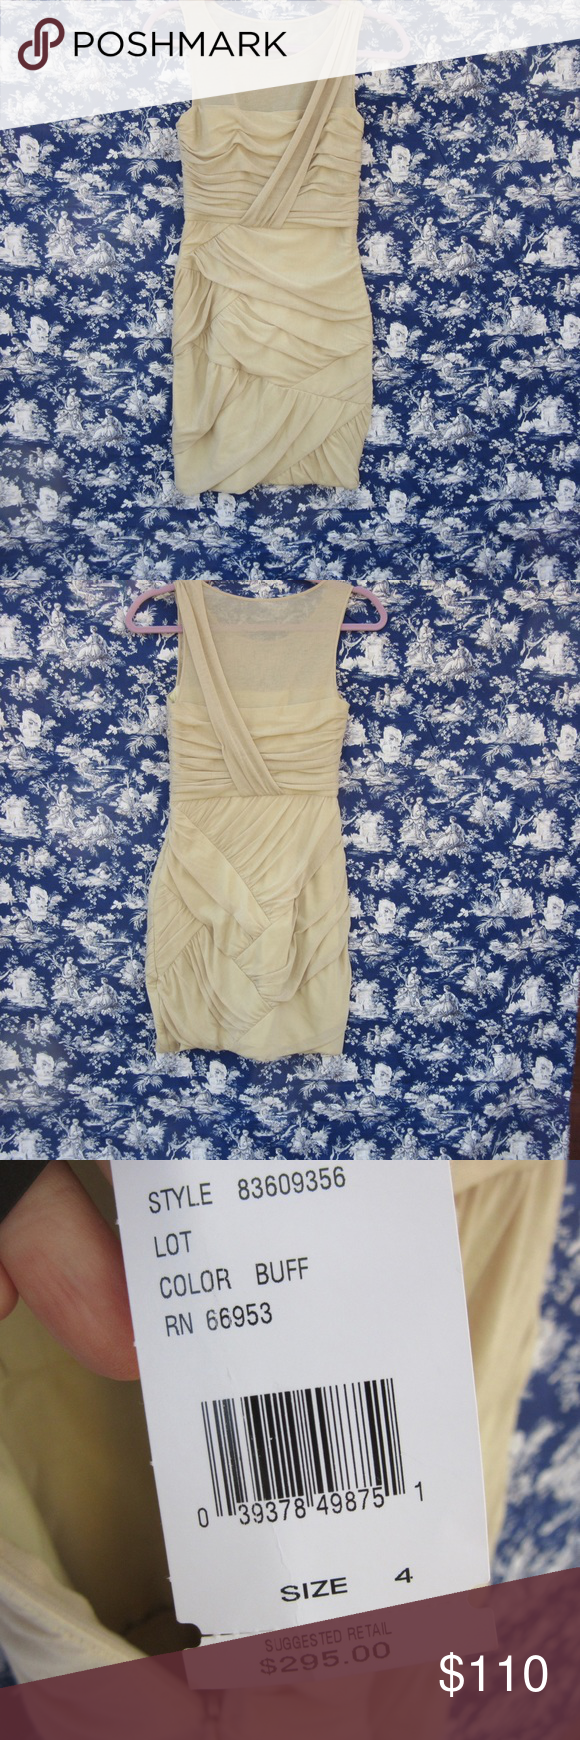 """Cynthia Steffe Bodycon Dress with Folds NWT This buff dress has never been worn. Outgrown before there was a place to wear it. Once I was only 103 lbs!!! This is made from polyester, rayon, and spandex. There is a side zipper. The tiny little stitches throughout the dress are to hold the folds in plaice. It is 32 1/2"""" hanging on a hanger. Much shorter on. The top 3 to 4"""" are sheer. Very sexy dress. Cynthia Steffe Dresses"""